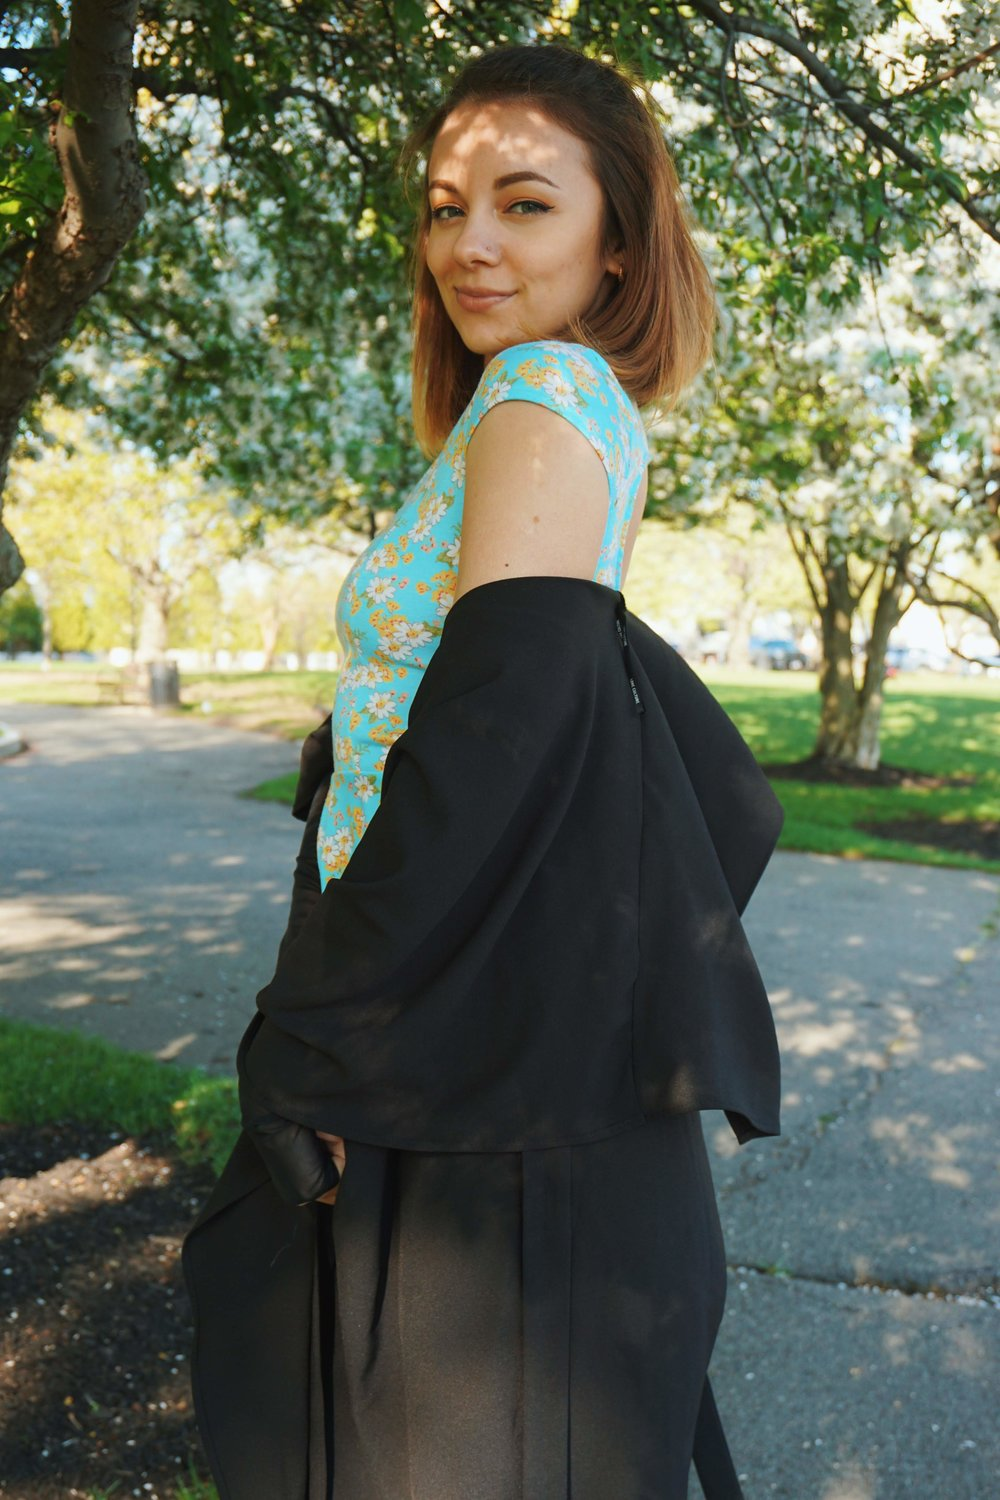 A side photo of a fashion blogger who is wearing a blue top, black capris, and black duster.